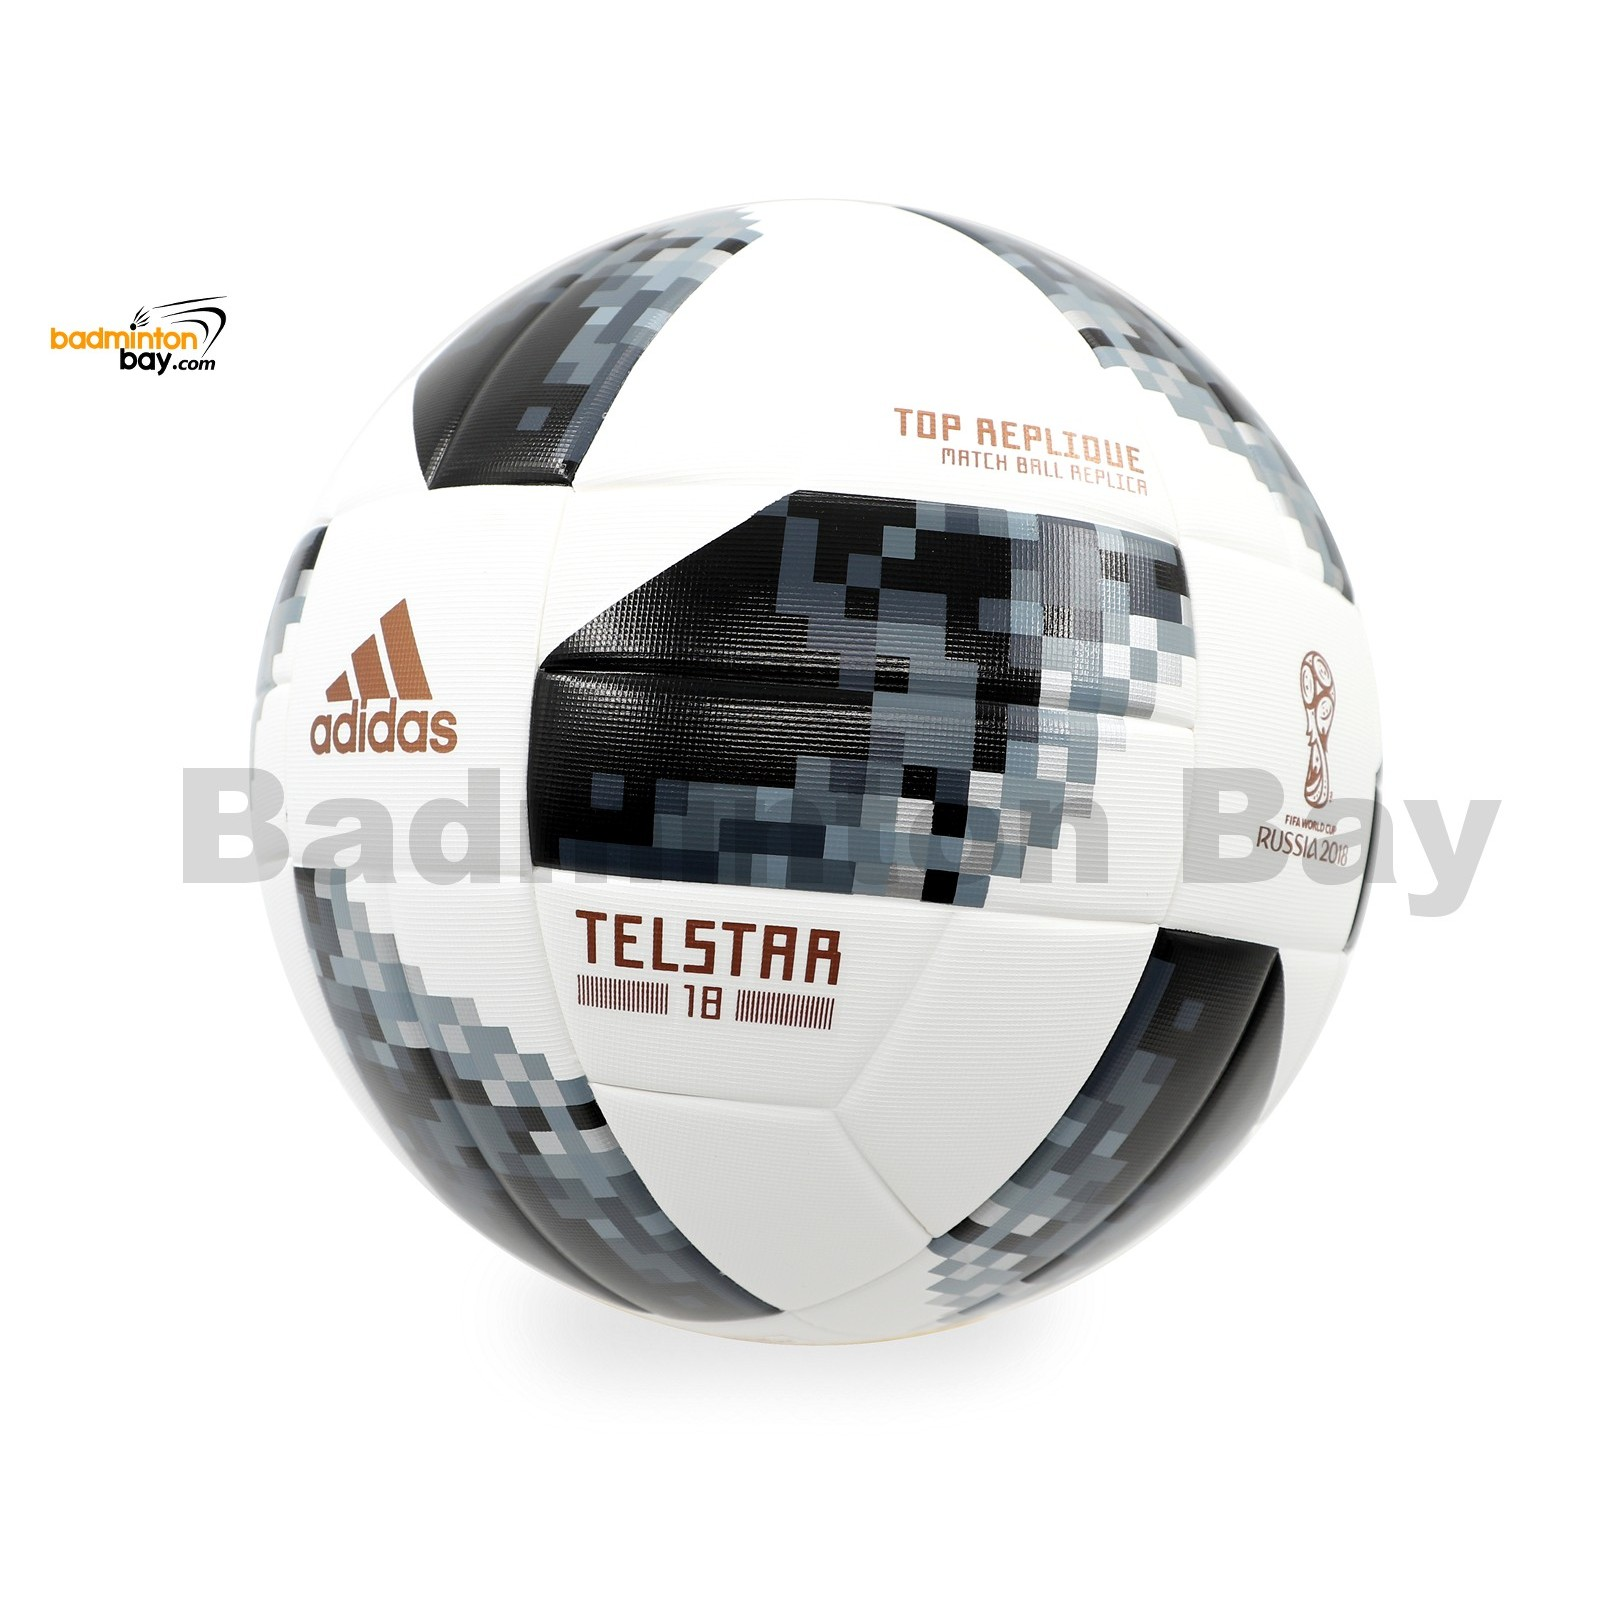 54b22ee6ab1 Genuine Adidas FIFA World Cup 2018 Telstar 18 Top Replique Ball Soccer  Football Size 5 Russia